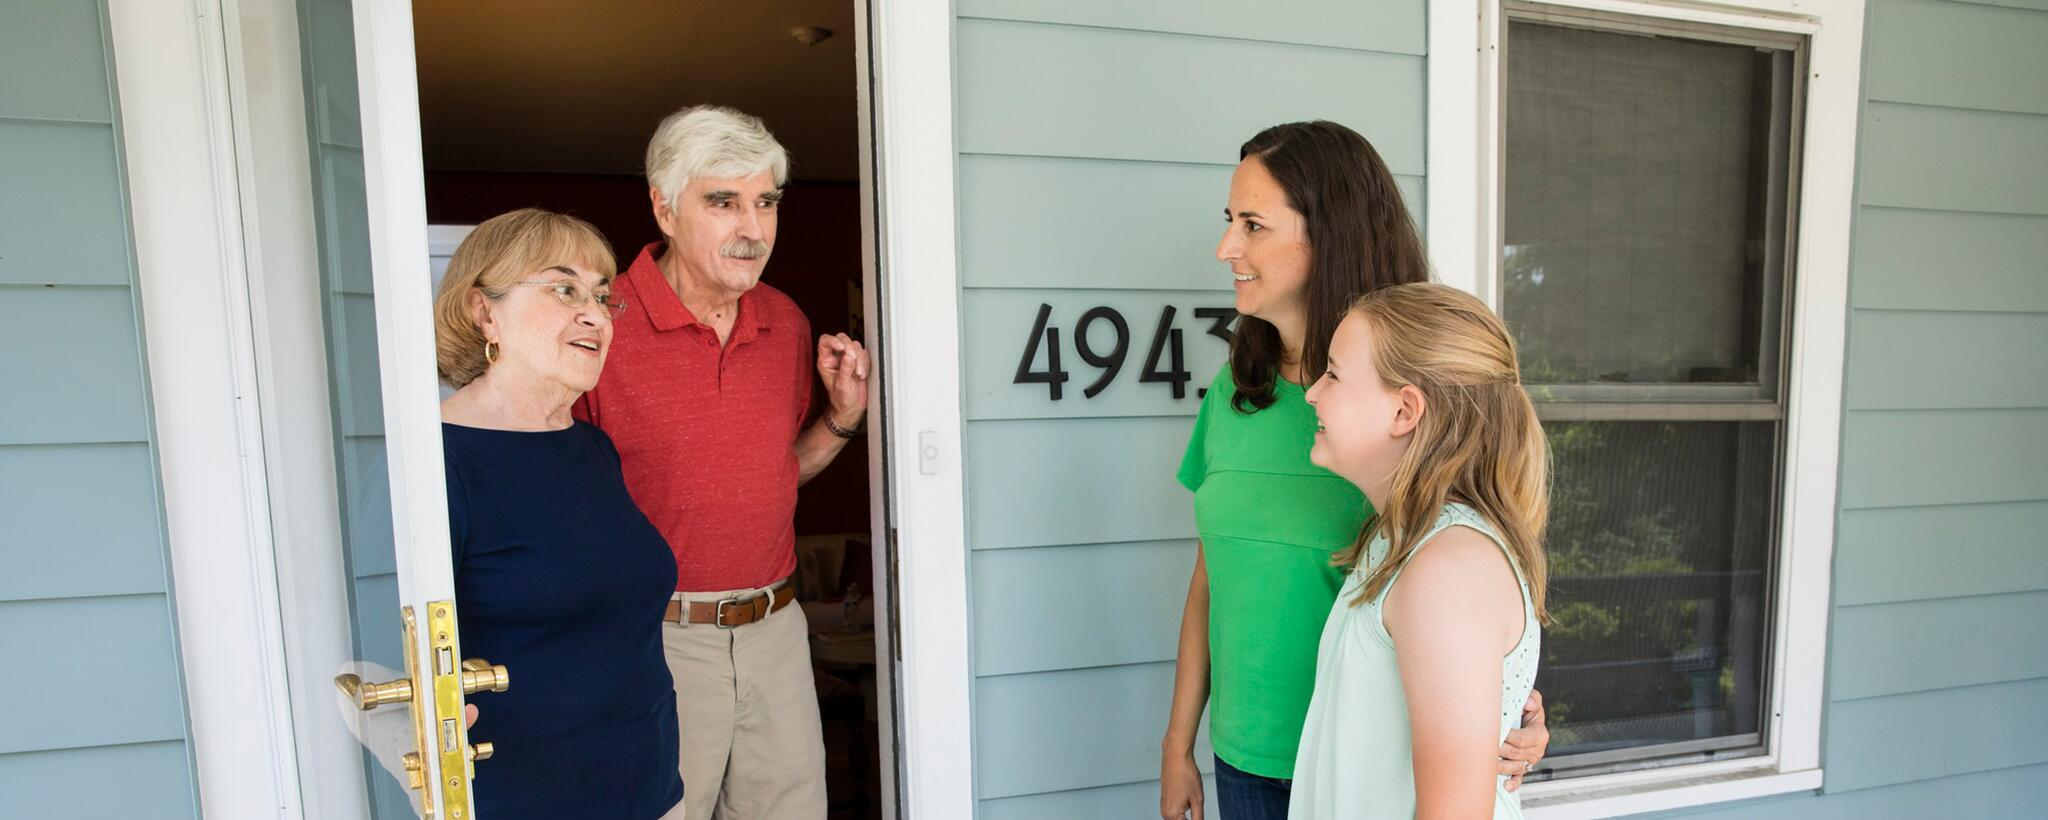 A couple stands at the door talking to their neighbors, a woman and her daughter.